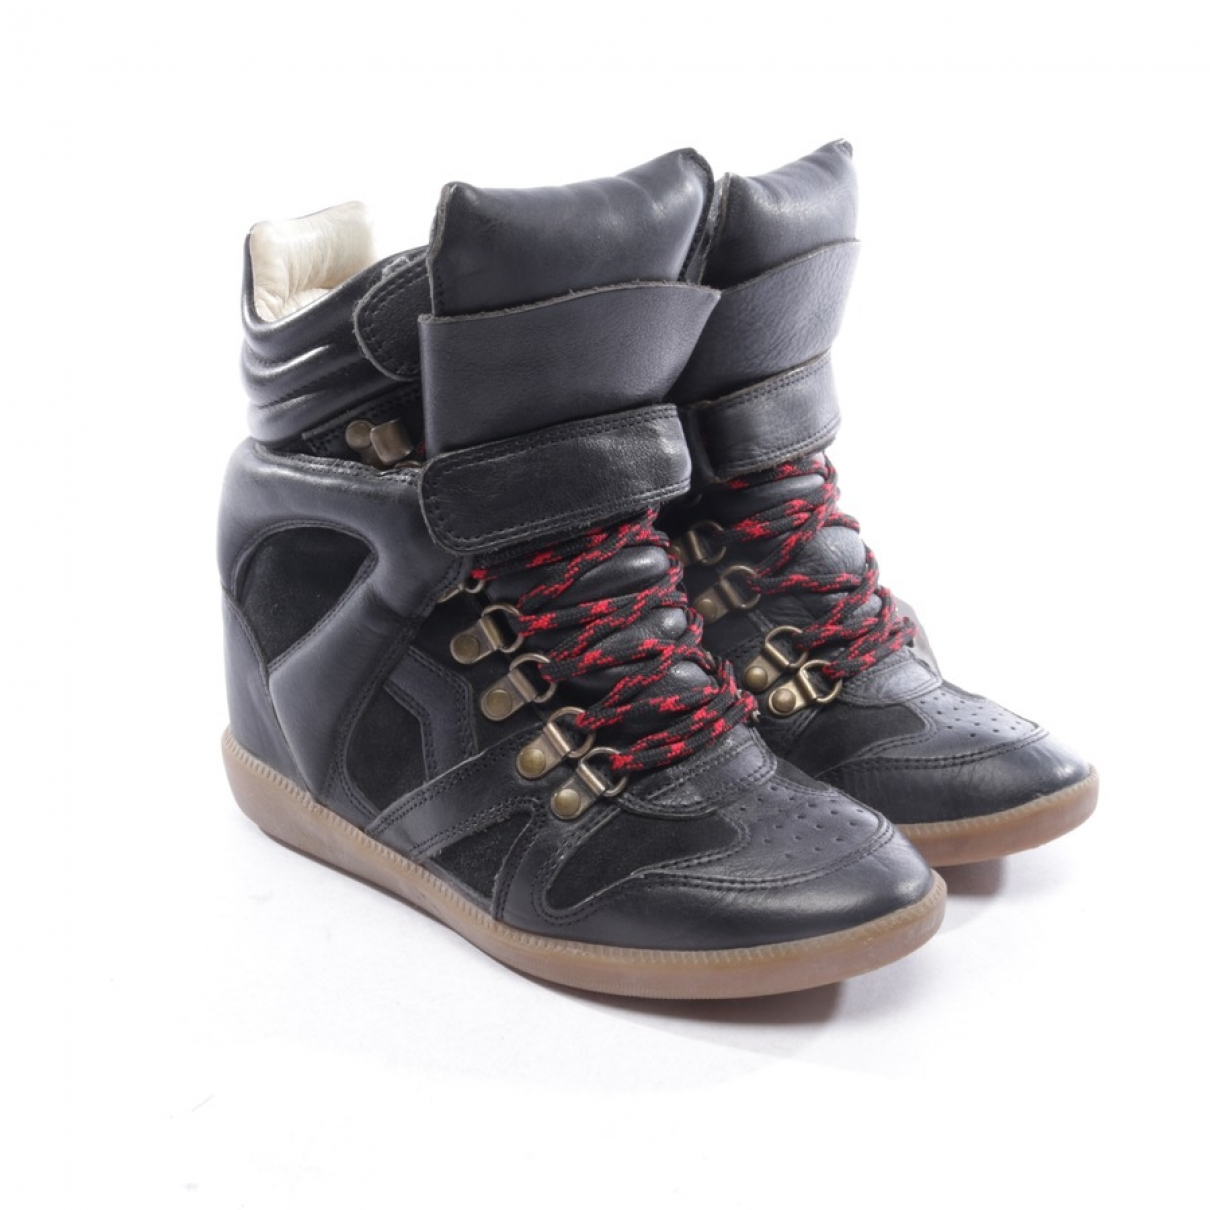 Isabel Marant Etoile \N Black Leather Trainers for Women 36 EU